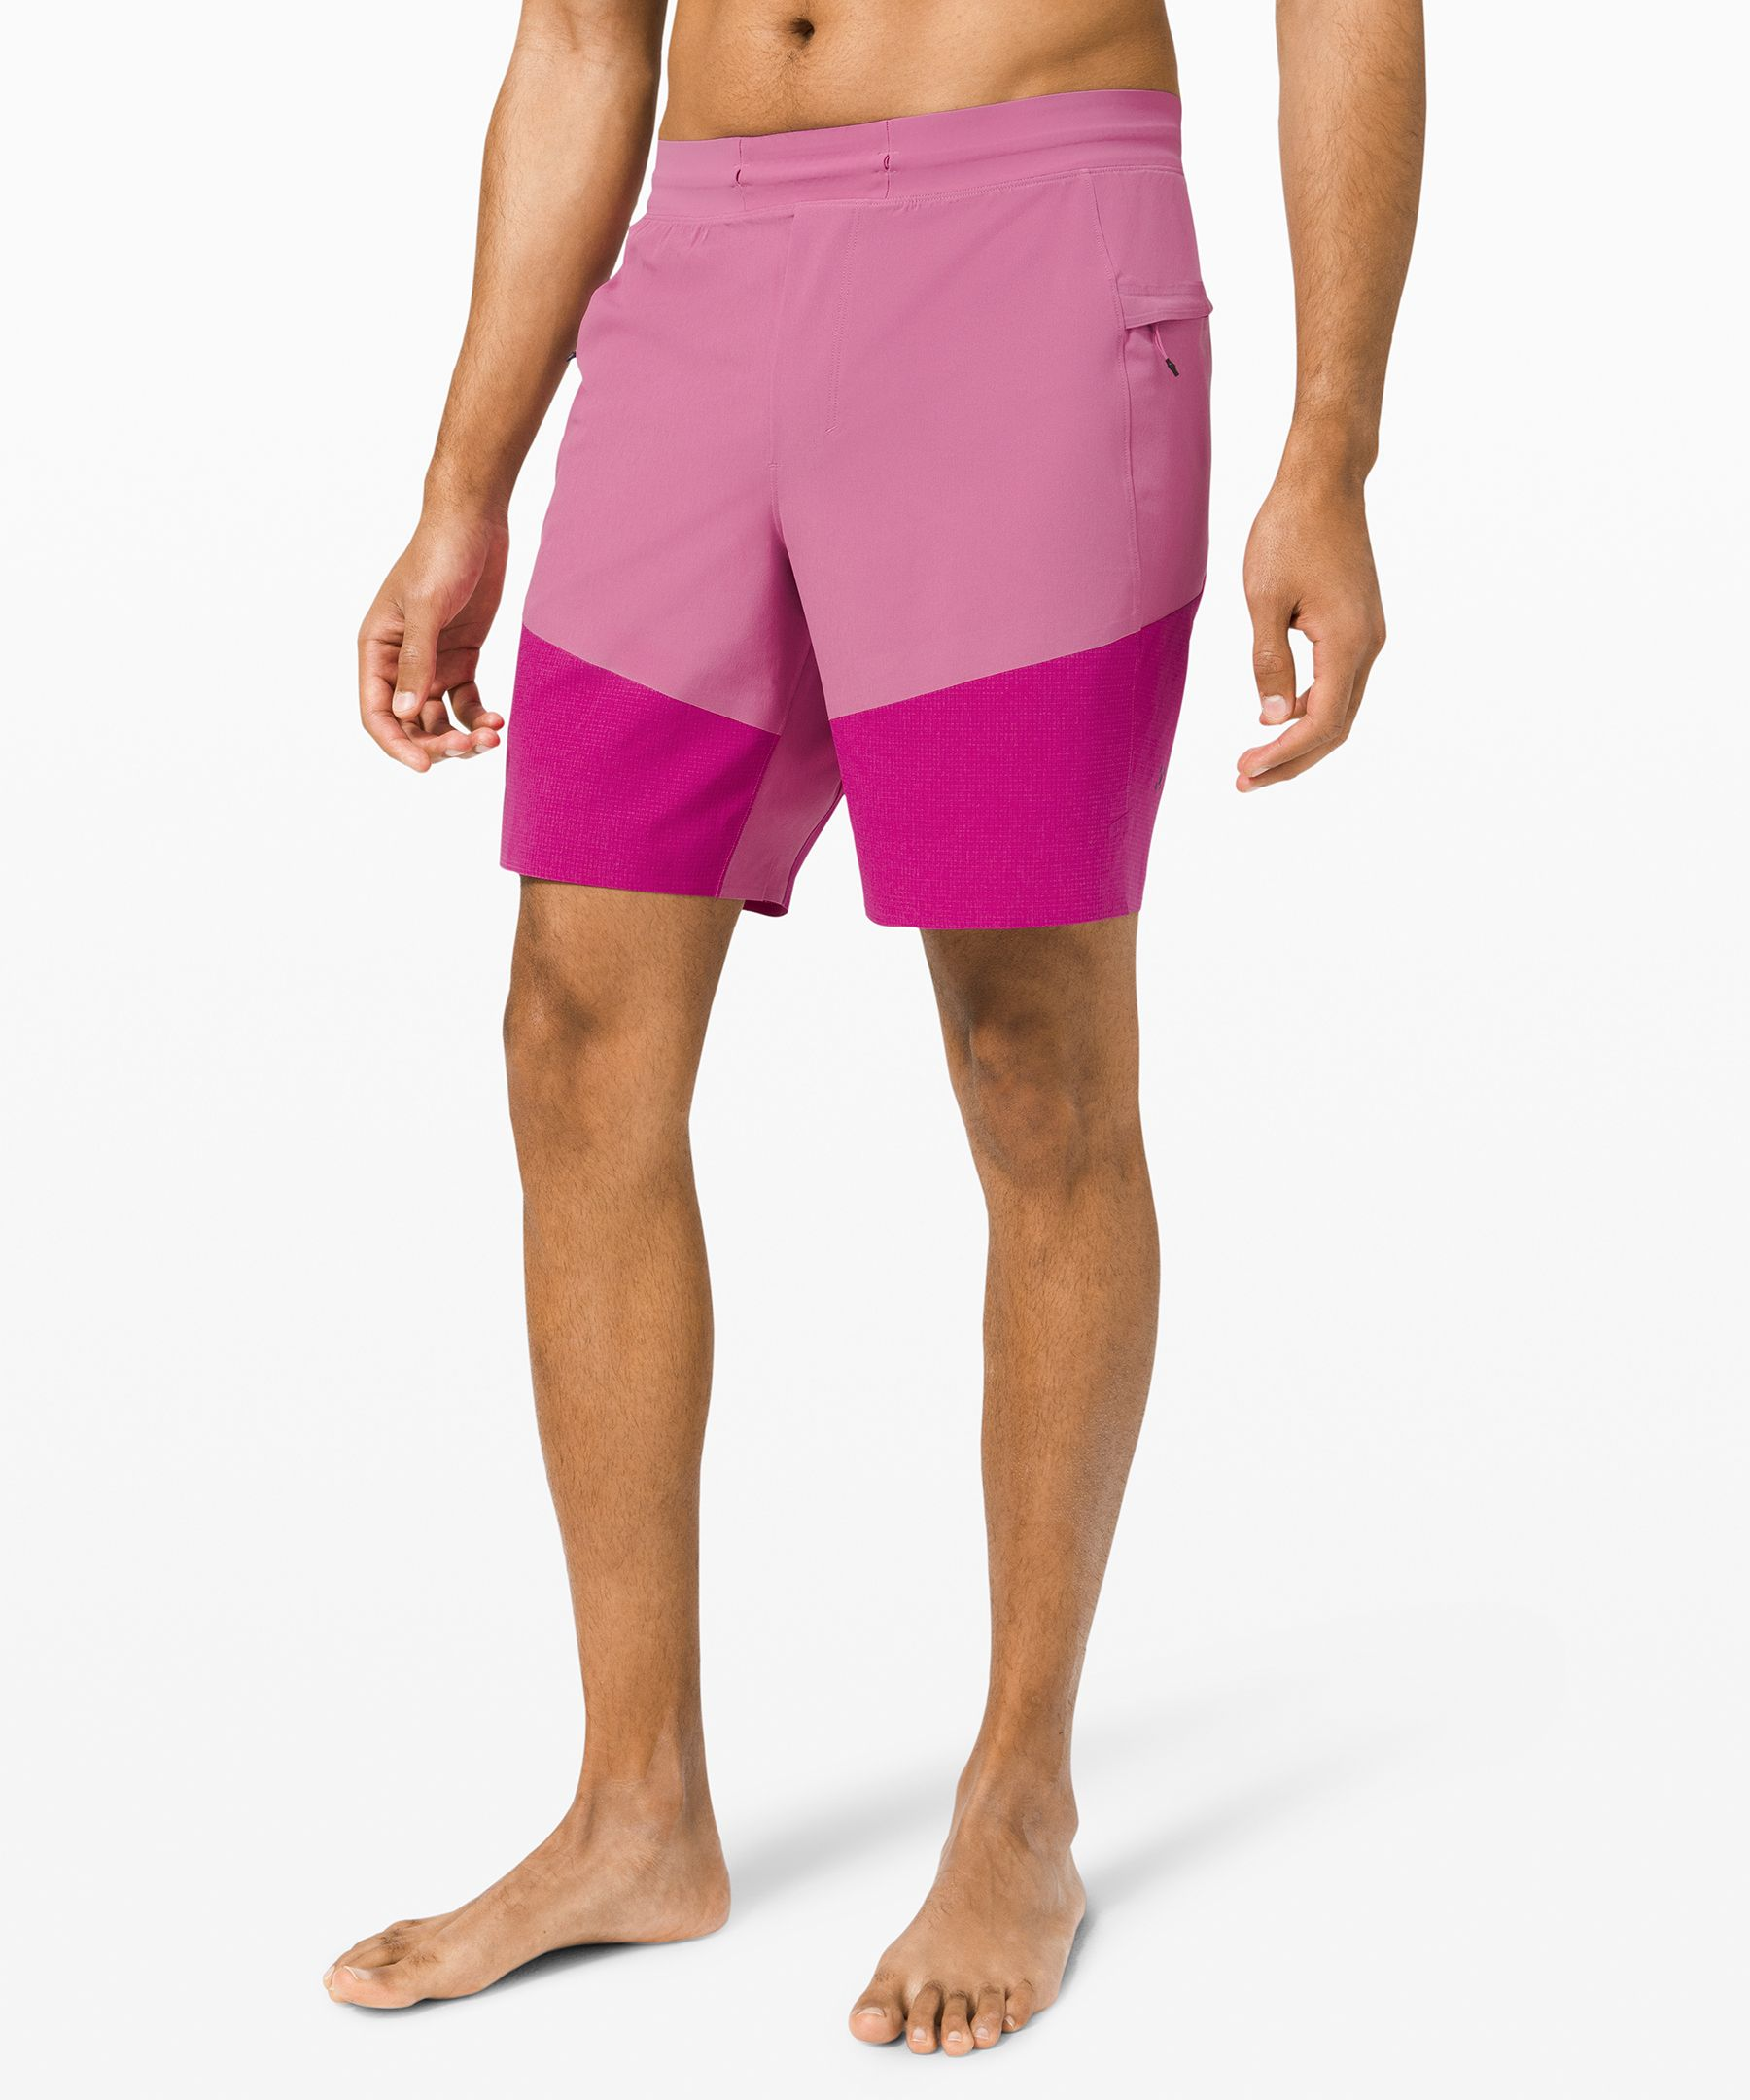 Lululemon Train To Beach Short 8 In Crushed Berry Polar Pink Light Modesens